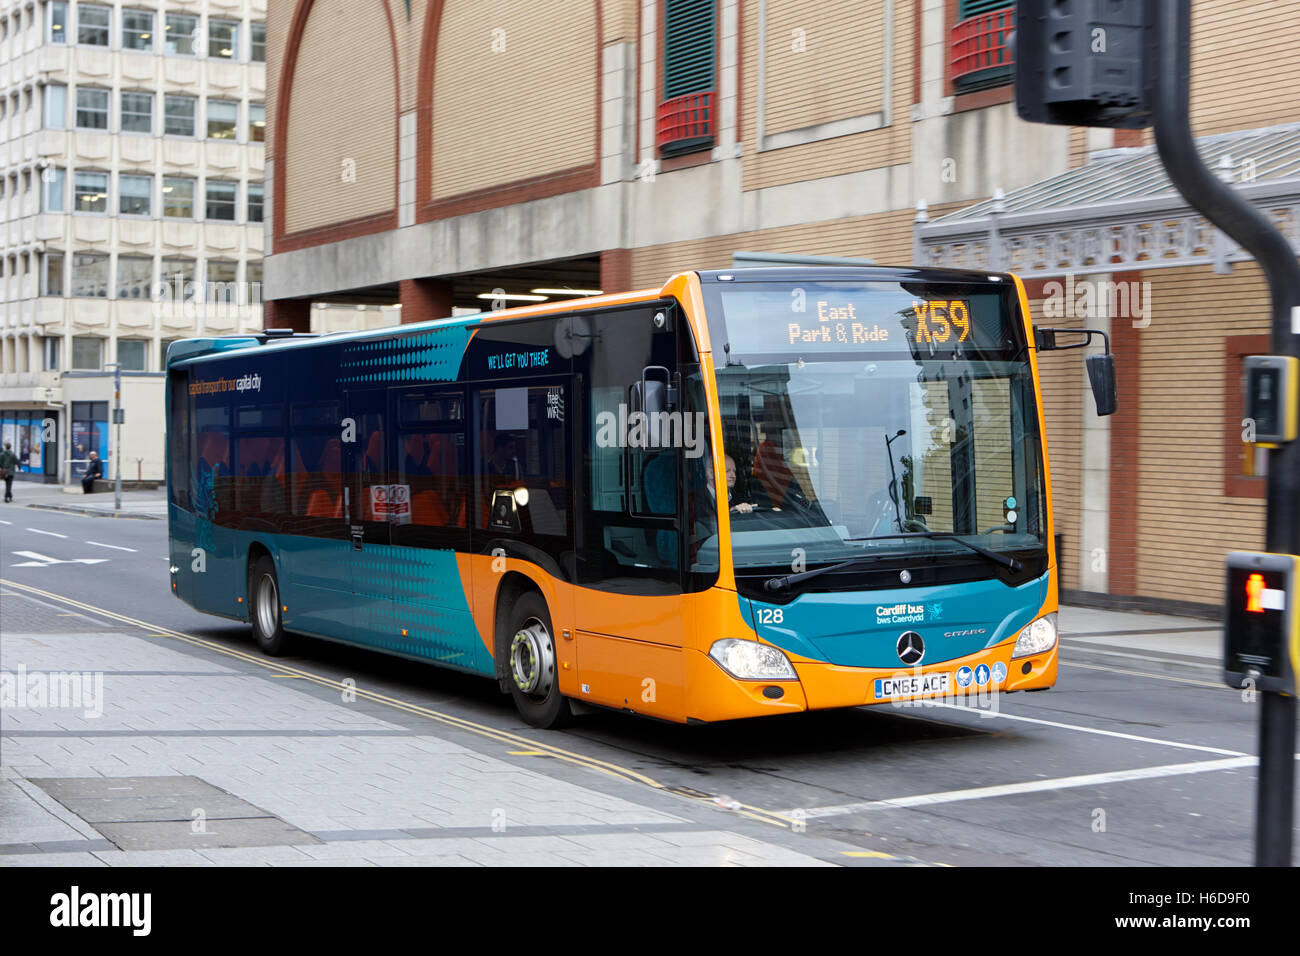 mercedes benz citaro used by Cardiff bus public transport Wales United Kingdom - Stock Image